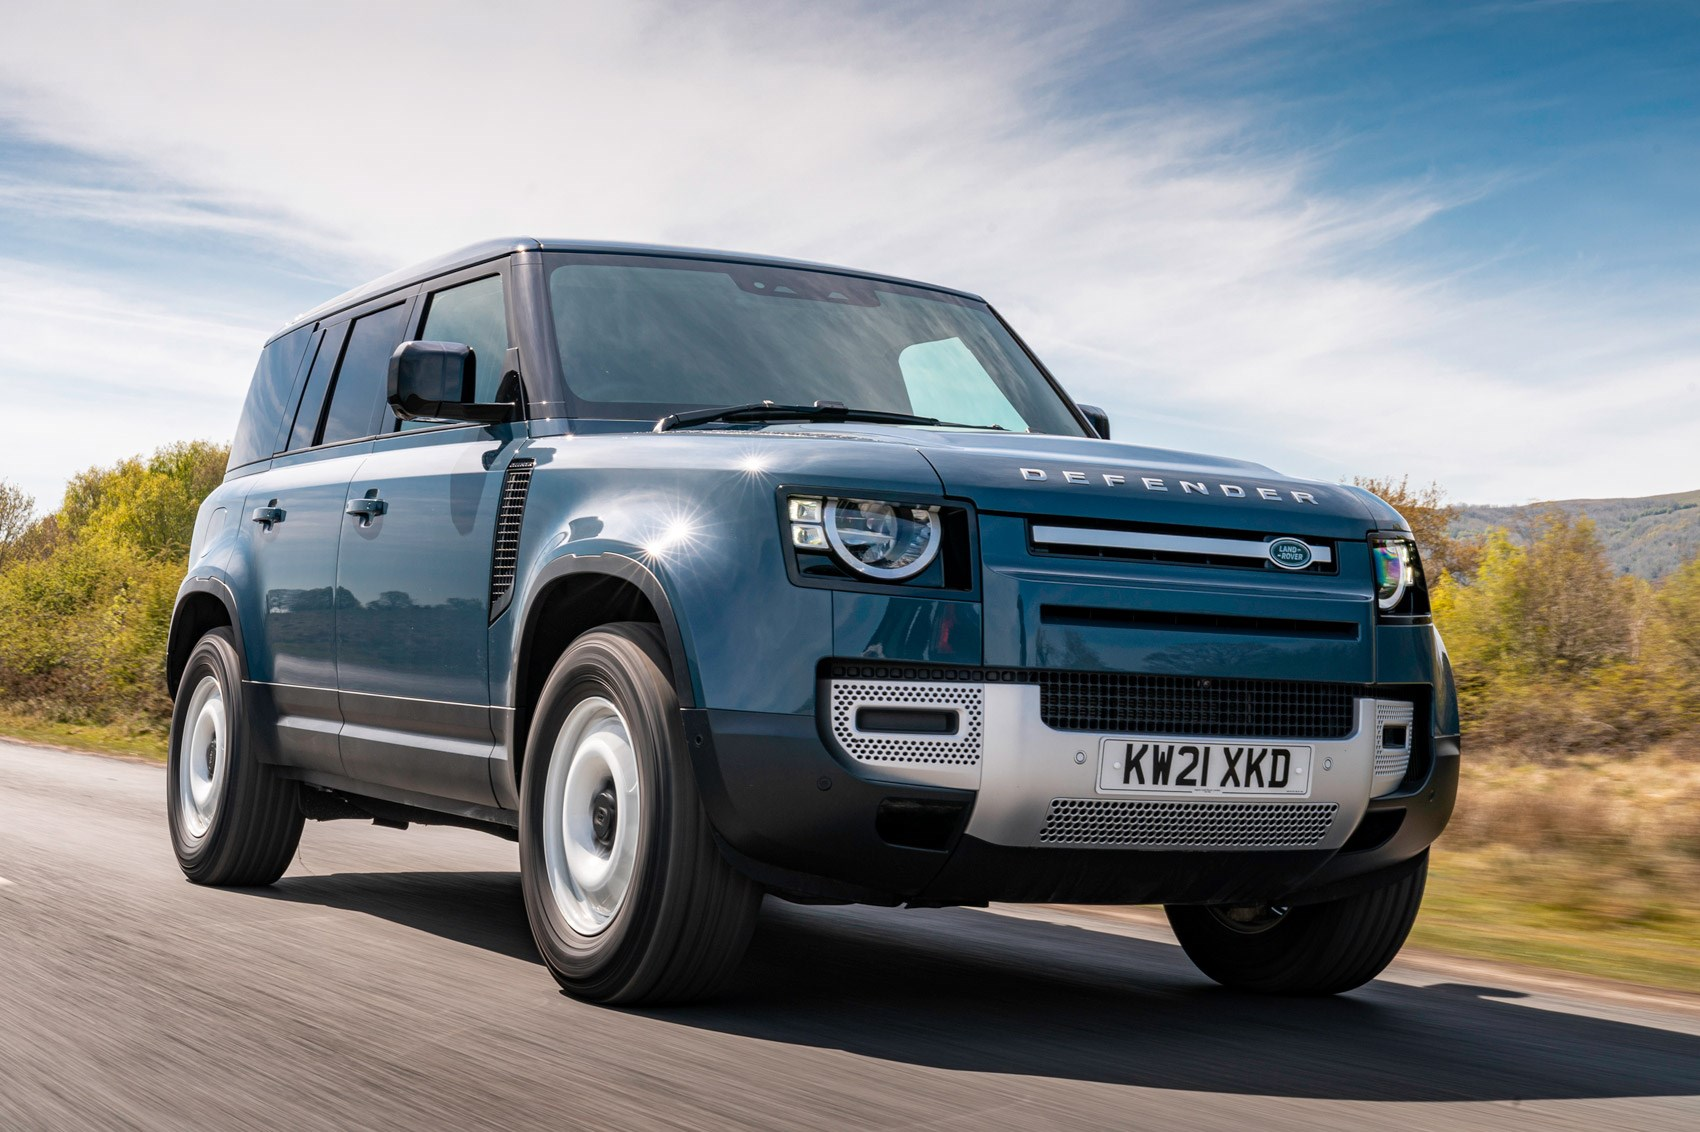 Land Rover Defender Hard Top review - commercial 4x4 - 110, front view, driving